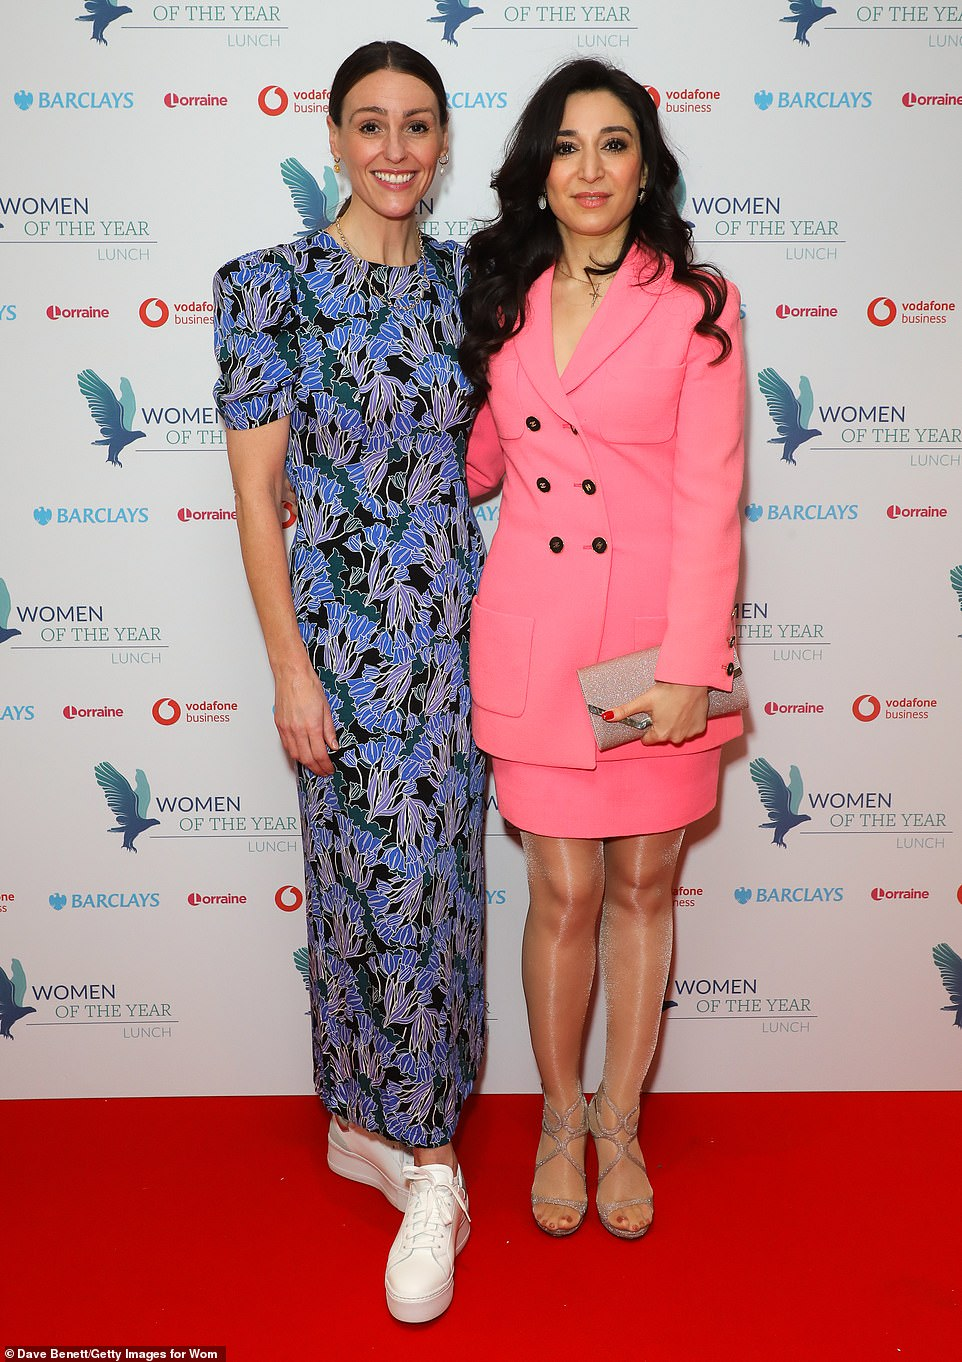 Stylish:Ensuring she claimed her own share of the limelight, Suranne, 43, opted for a form-fitting blue floral dress with peaked shoulders and an ankle length cut as she posed for a photo alongside Heba Bevan,winner of the Vodafone's Women of the Year Innovation Award